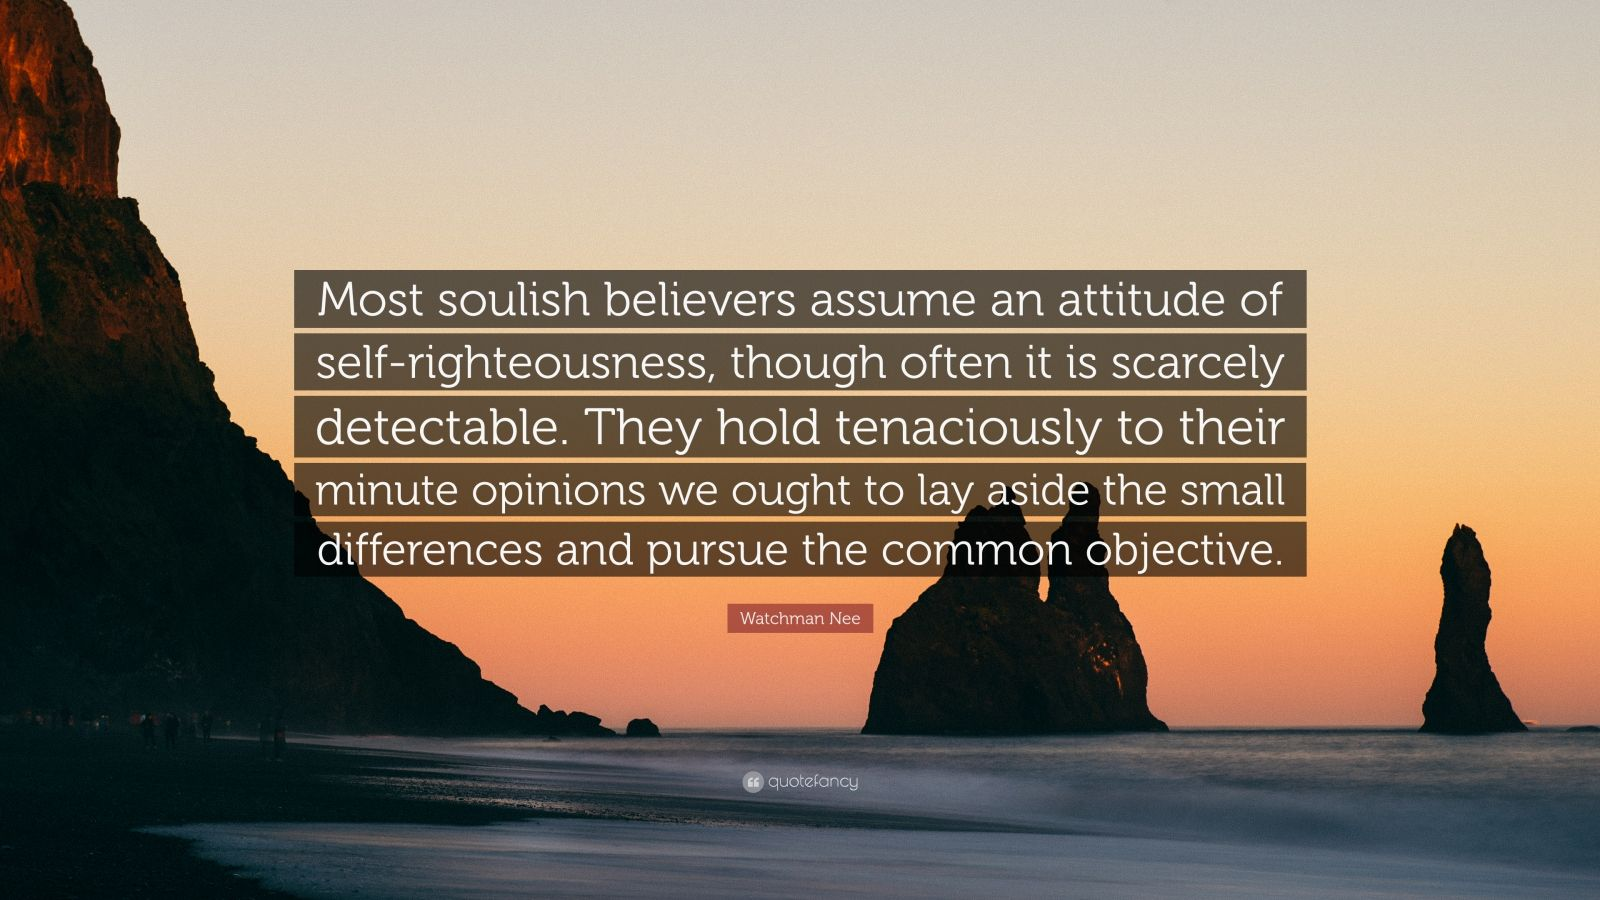 "Watchman Nee Quote: ""Most soulish believers assume an attitude of self-righteousness, though often it is scarcely detectable. They hold tenaciously to their minute opinions we ought to lay aside the small differences and pursue the common objective."""